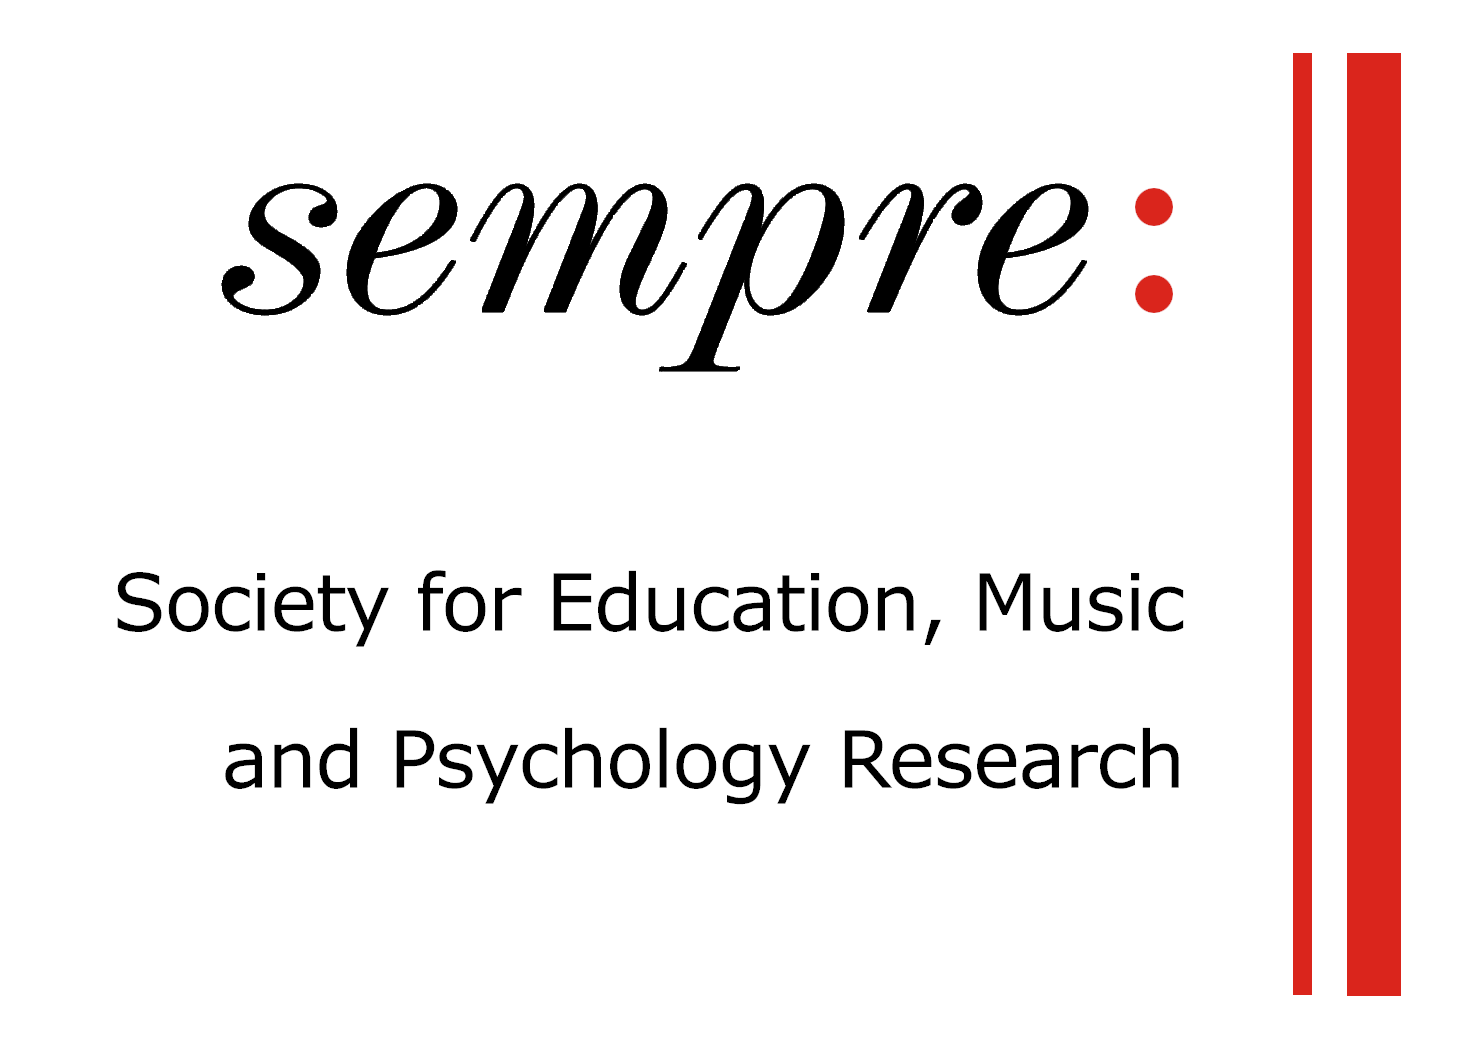 Autumn 2020 SEMPRE Conference to be hosted at Leeds